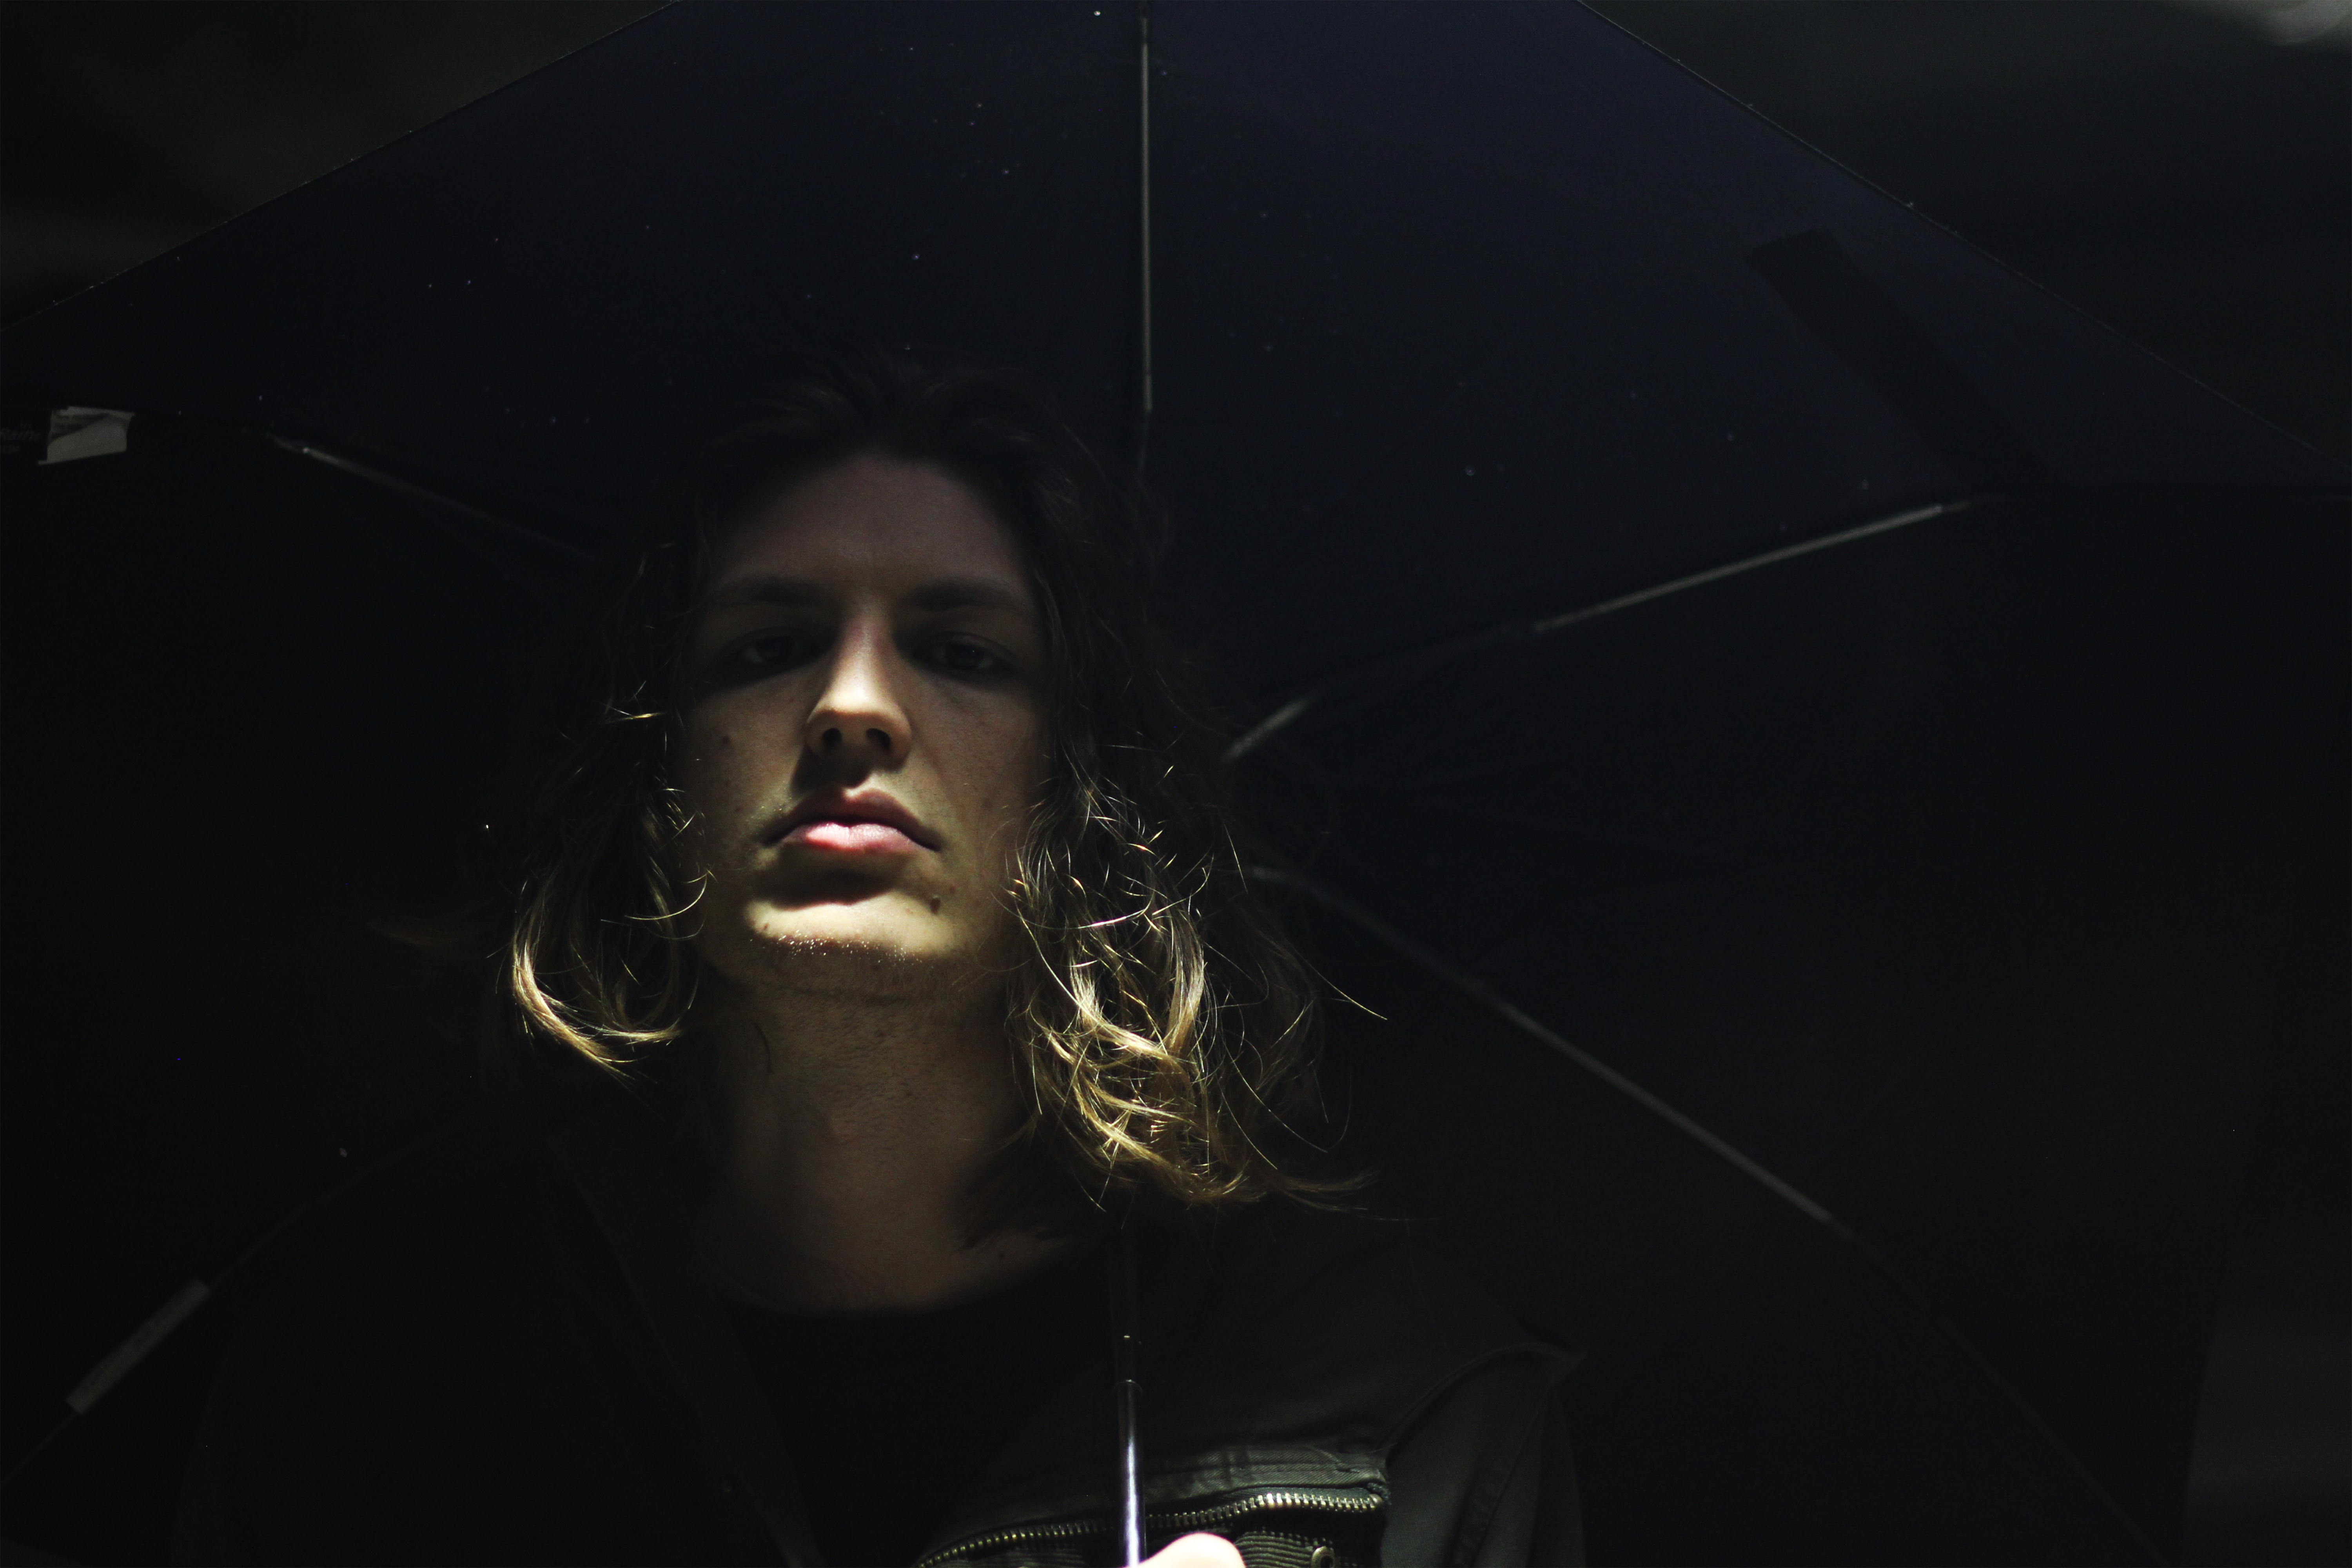 """Onokio Explores the Dreams of Artificial Intelligence in New Single """"add_slacking"""""""